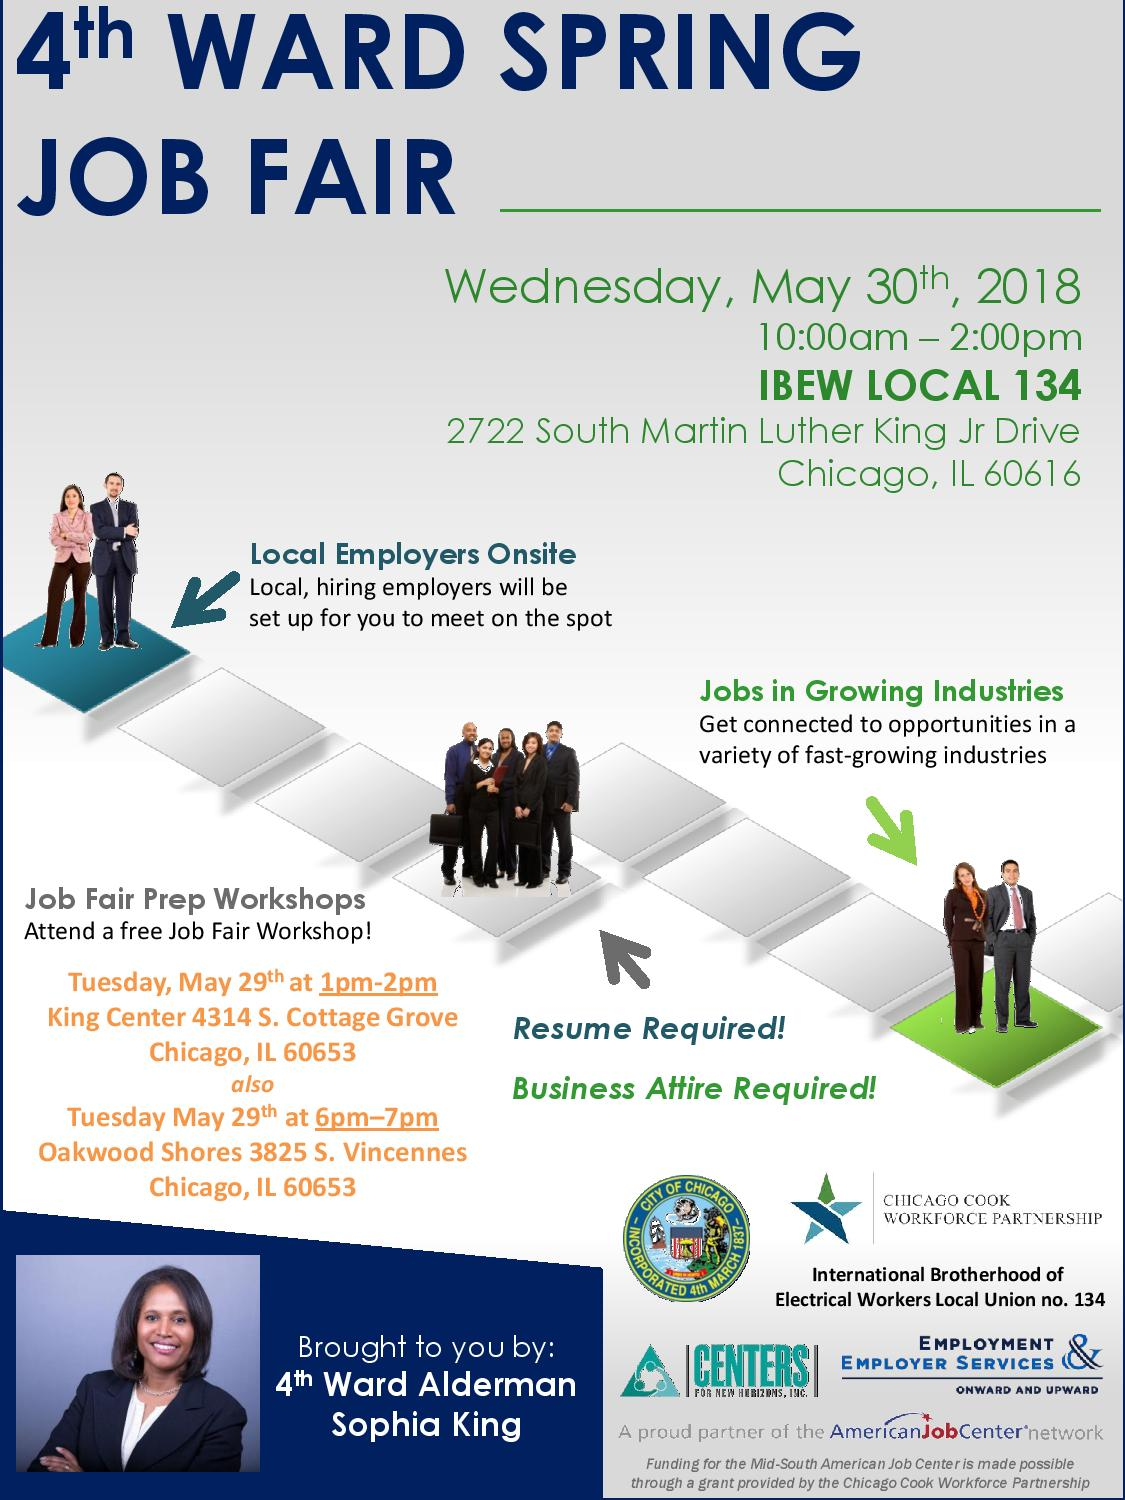 4th Ward Spring Job Fair Flyer - FINAL-page-001